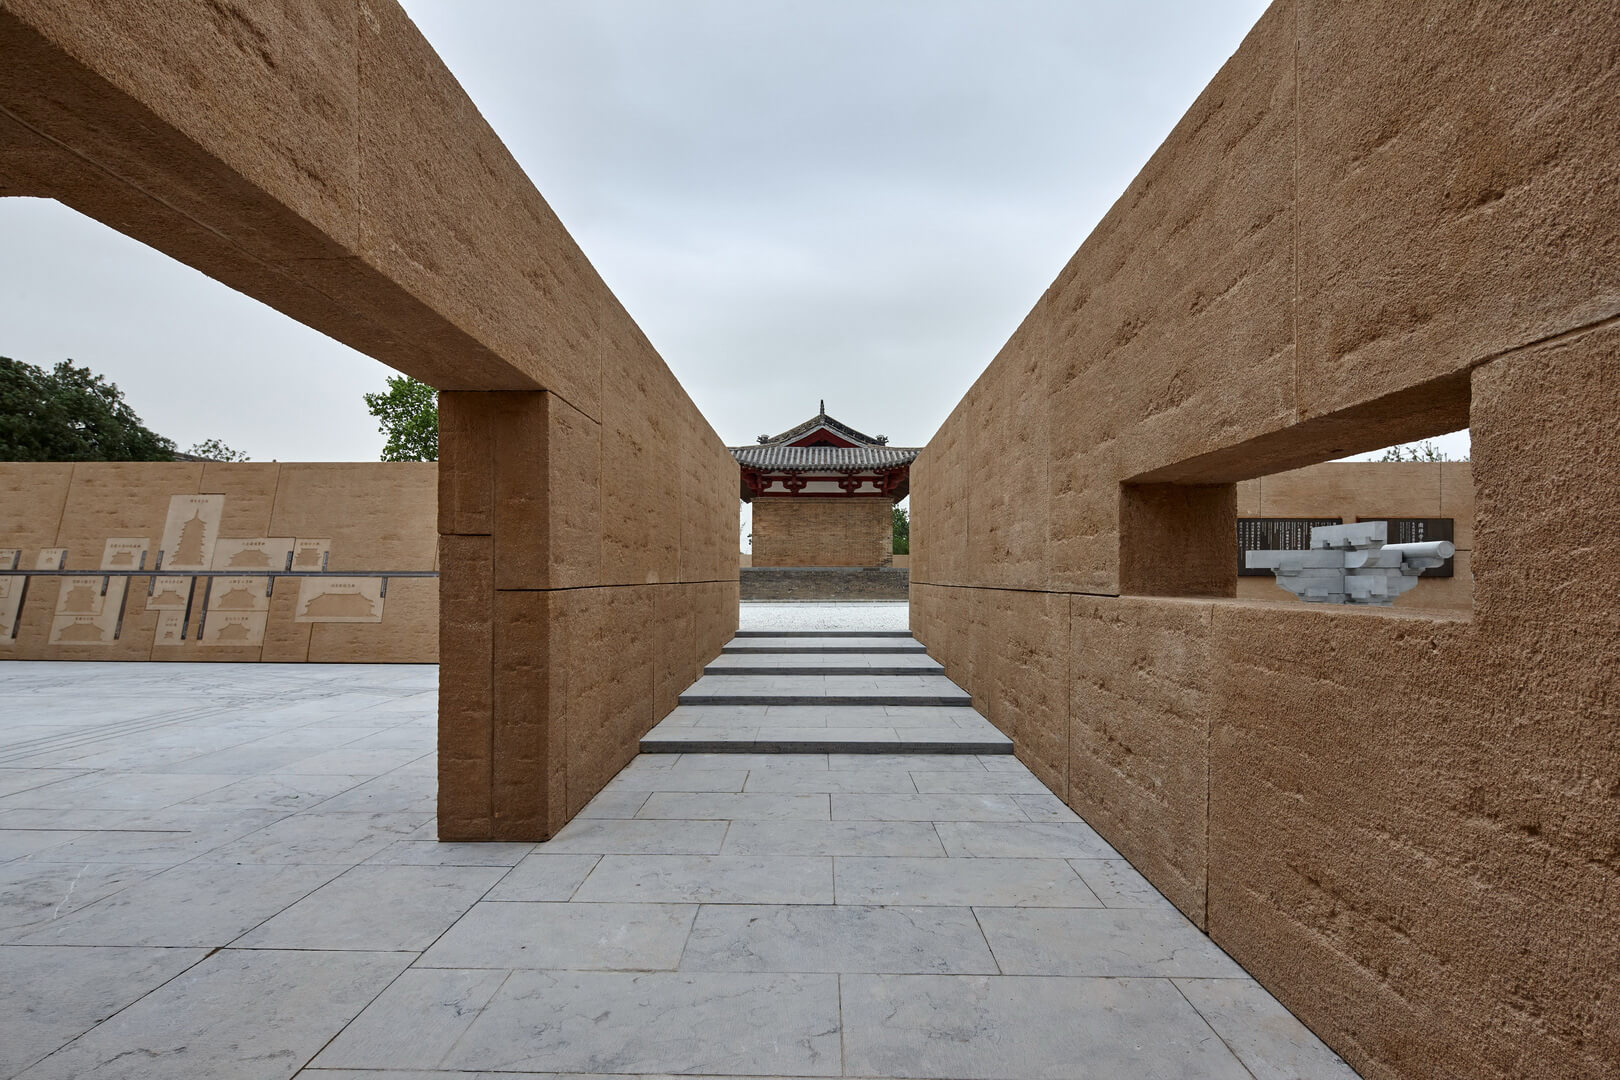 The premise of the Environmental Upgrade of the Five Dragons Temple (2008) is centred around creating layers of overlapping spaces around the main building to tell the story of the temple history and ancient Chinese architecture | Wang Hui | Urbanus | STIRworld